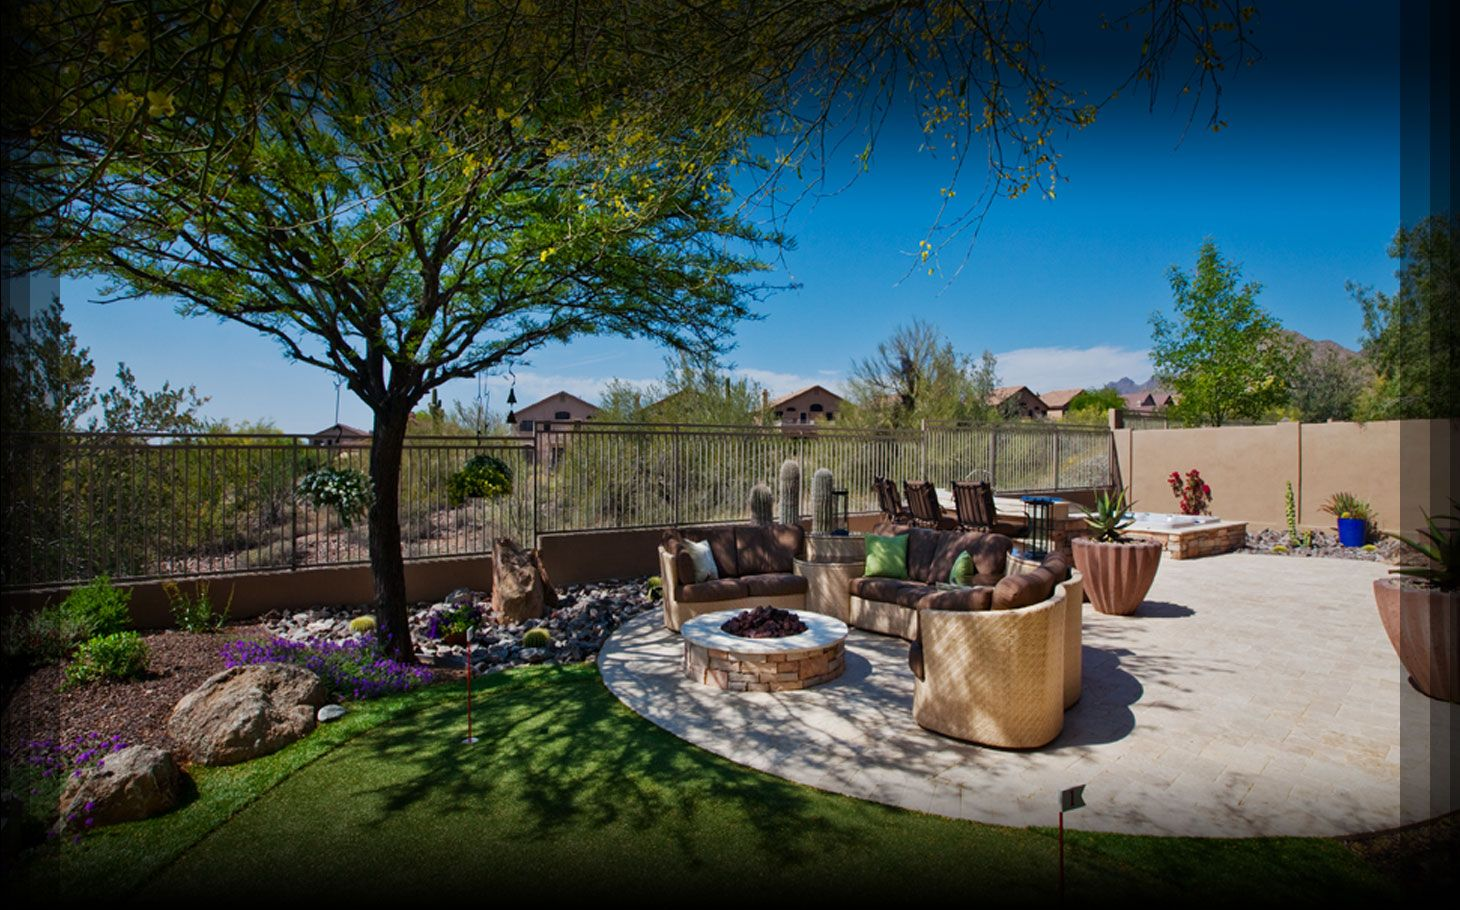 Desert Landscape Design Ideas awesome landscaping edging equipment 1000 Images About Landscaping Ideas On Pinterest Landscape Design Arizona And Landscapes